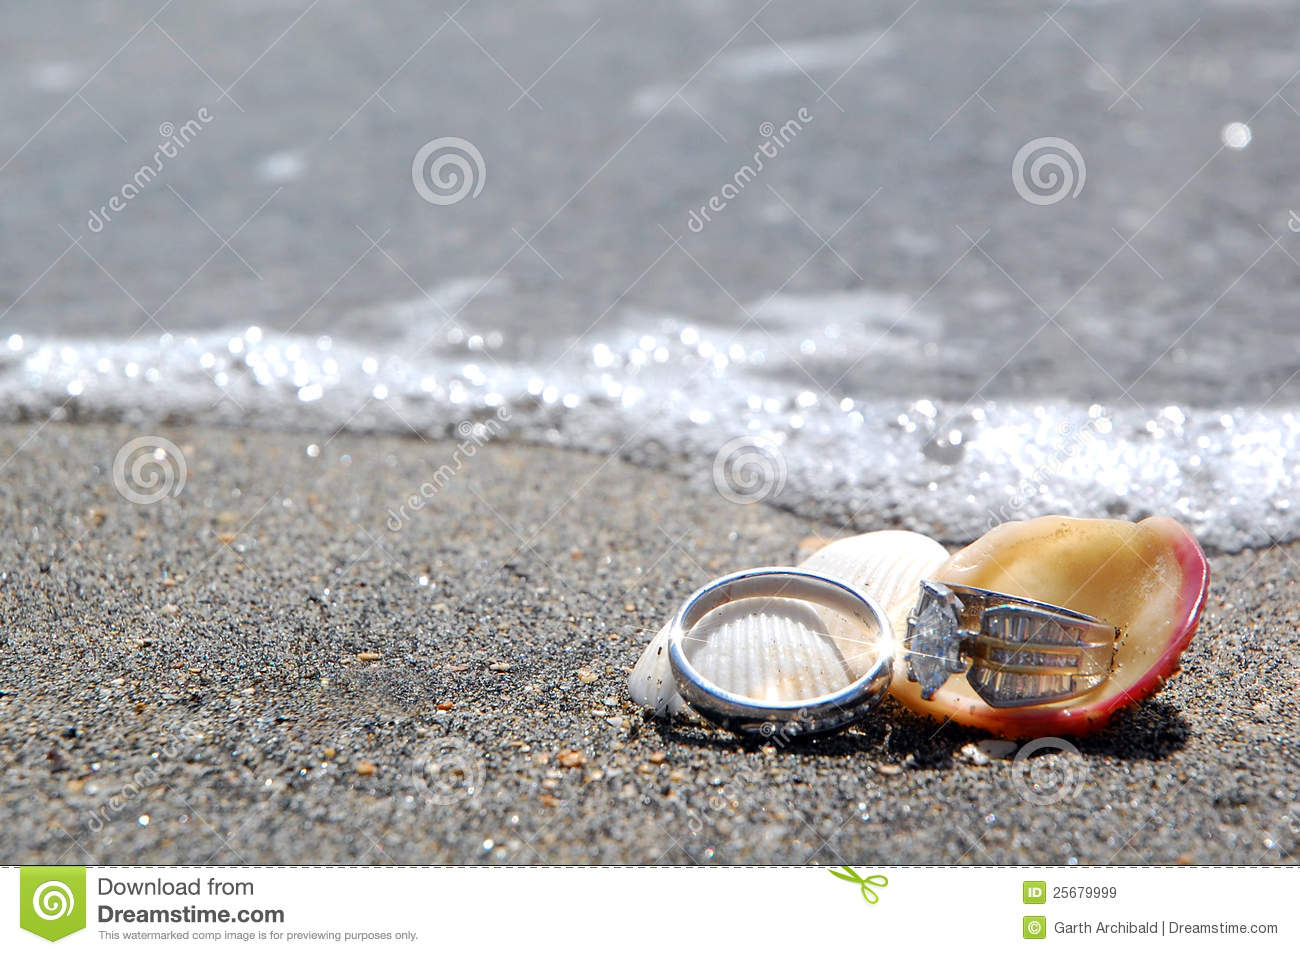 free engaging cs blur srgb rings wedding related stock photo beach dl searches search photos pexels reflections